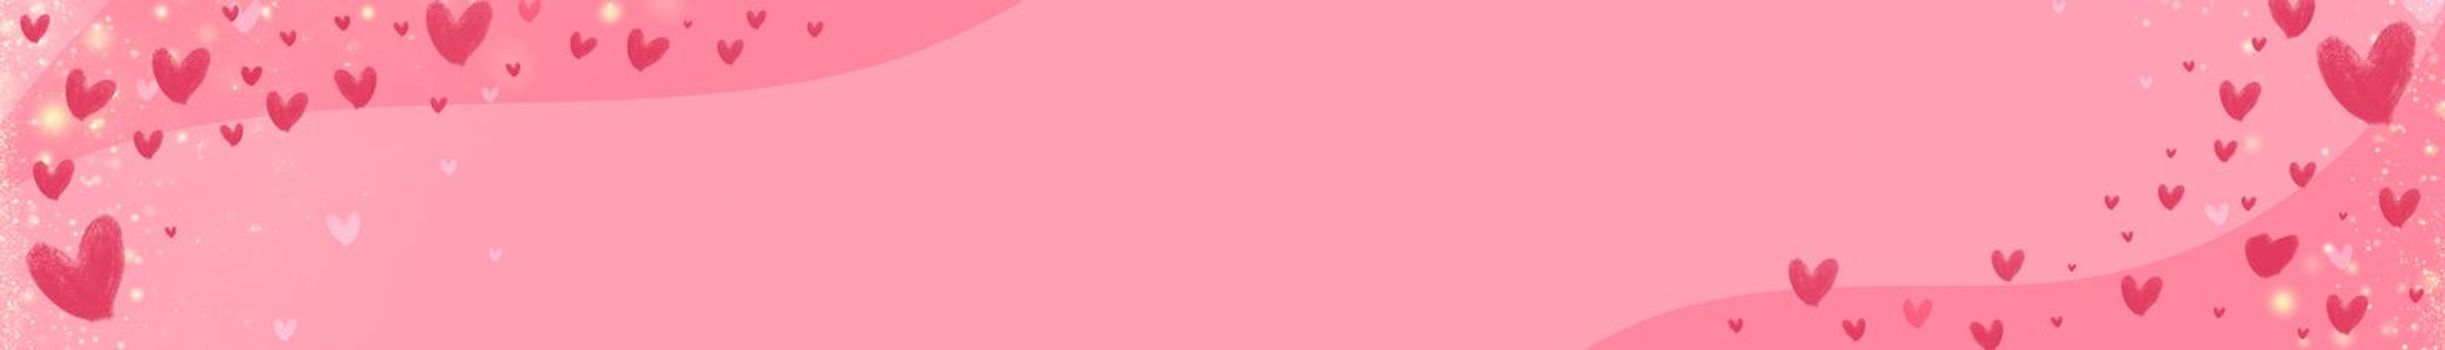 banner of heart on pink background. illustration symbols of love for Happy Women's, Mother's, Valentine's Day. banner for the site.